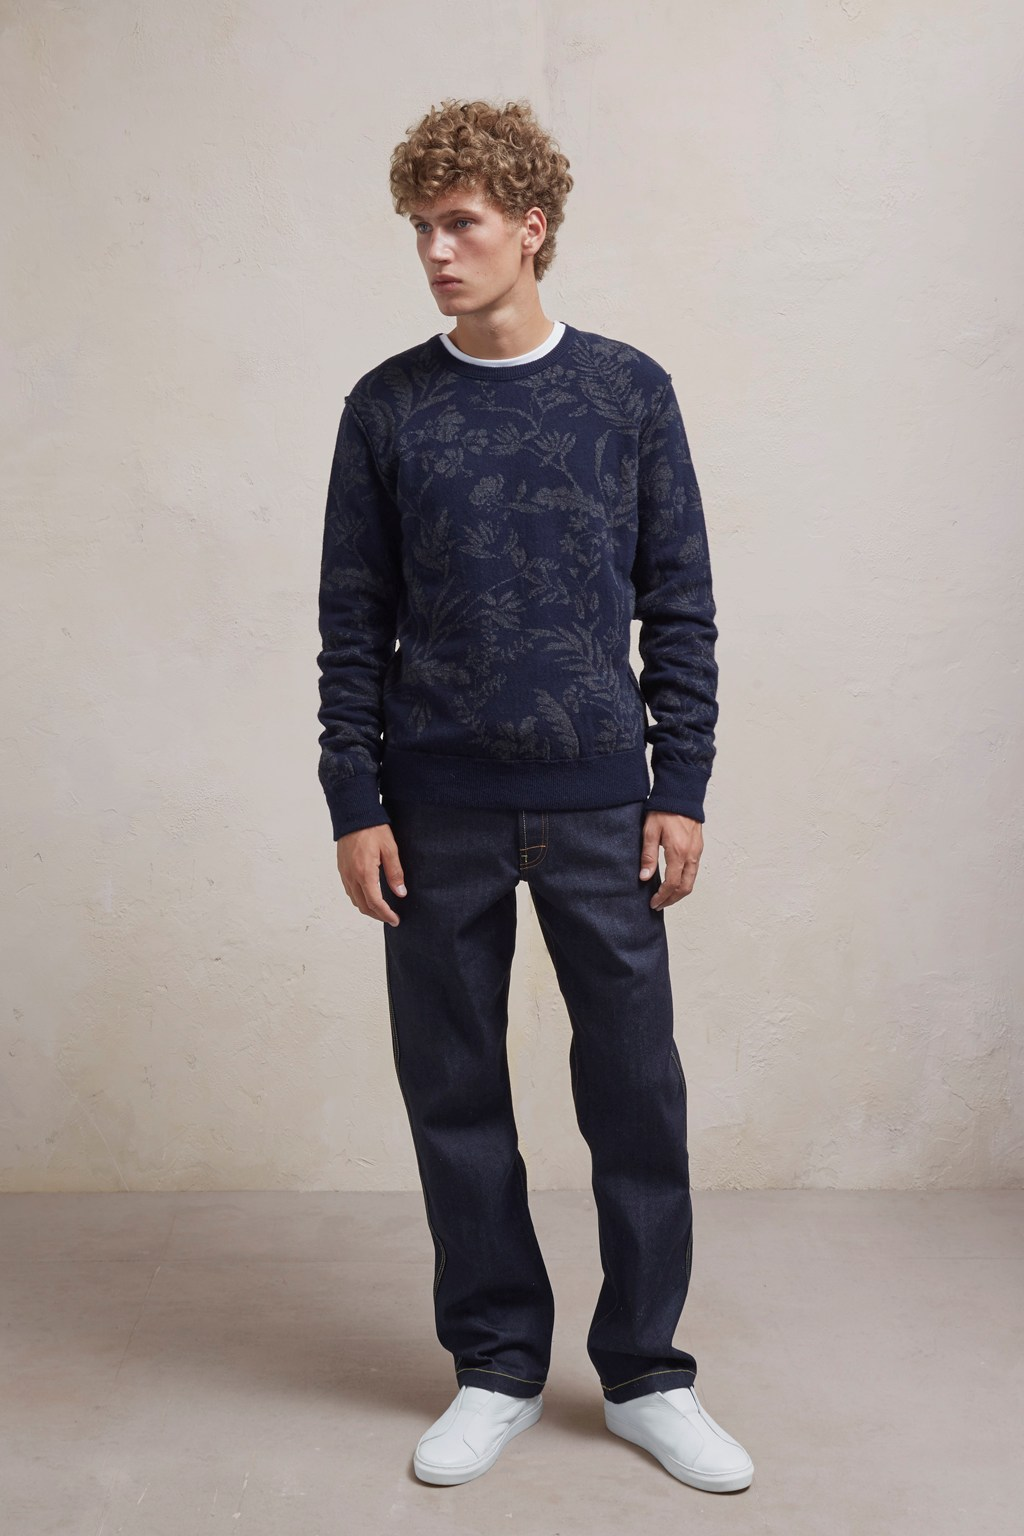 Men's Jumpers - Fumio Jaquard Lambswool Sweatshirt